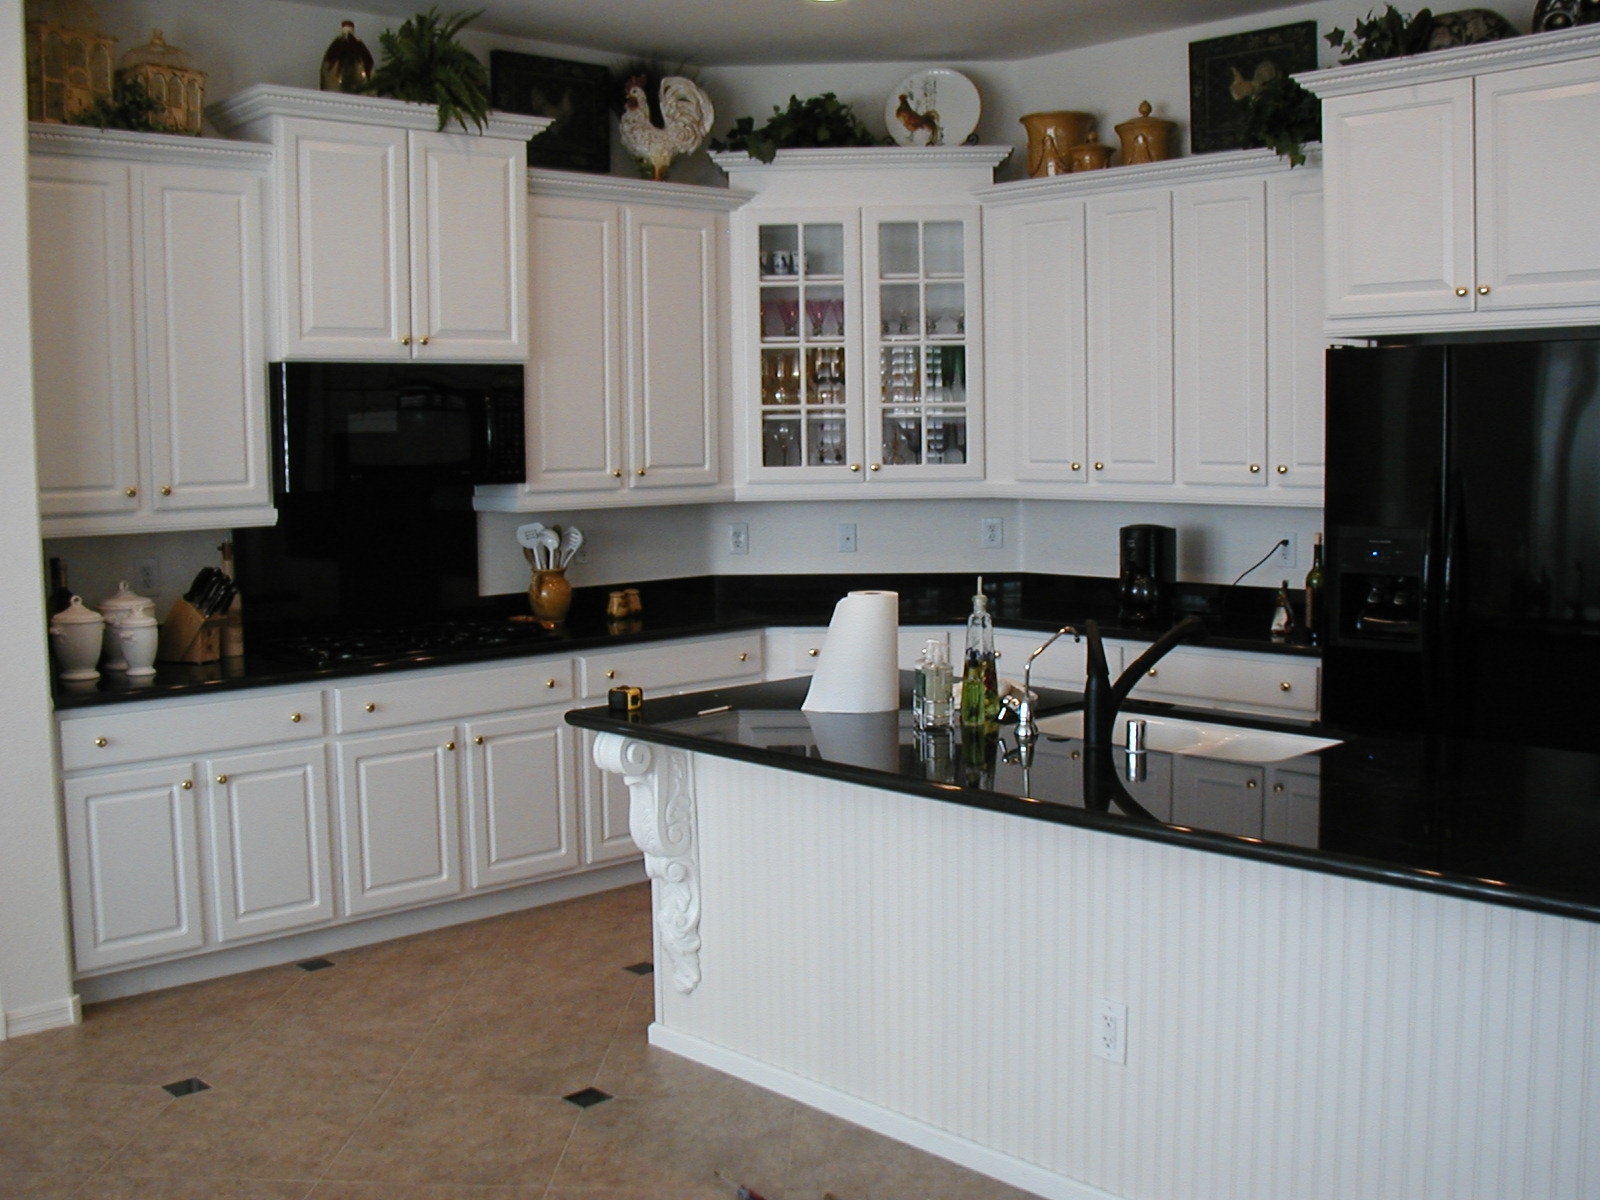 Hmh designs white kitchen cabinets timeless and transcendent for Black and white kitchen cabinet designs